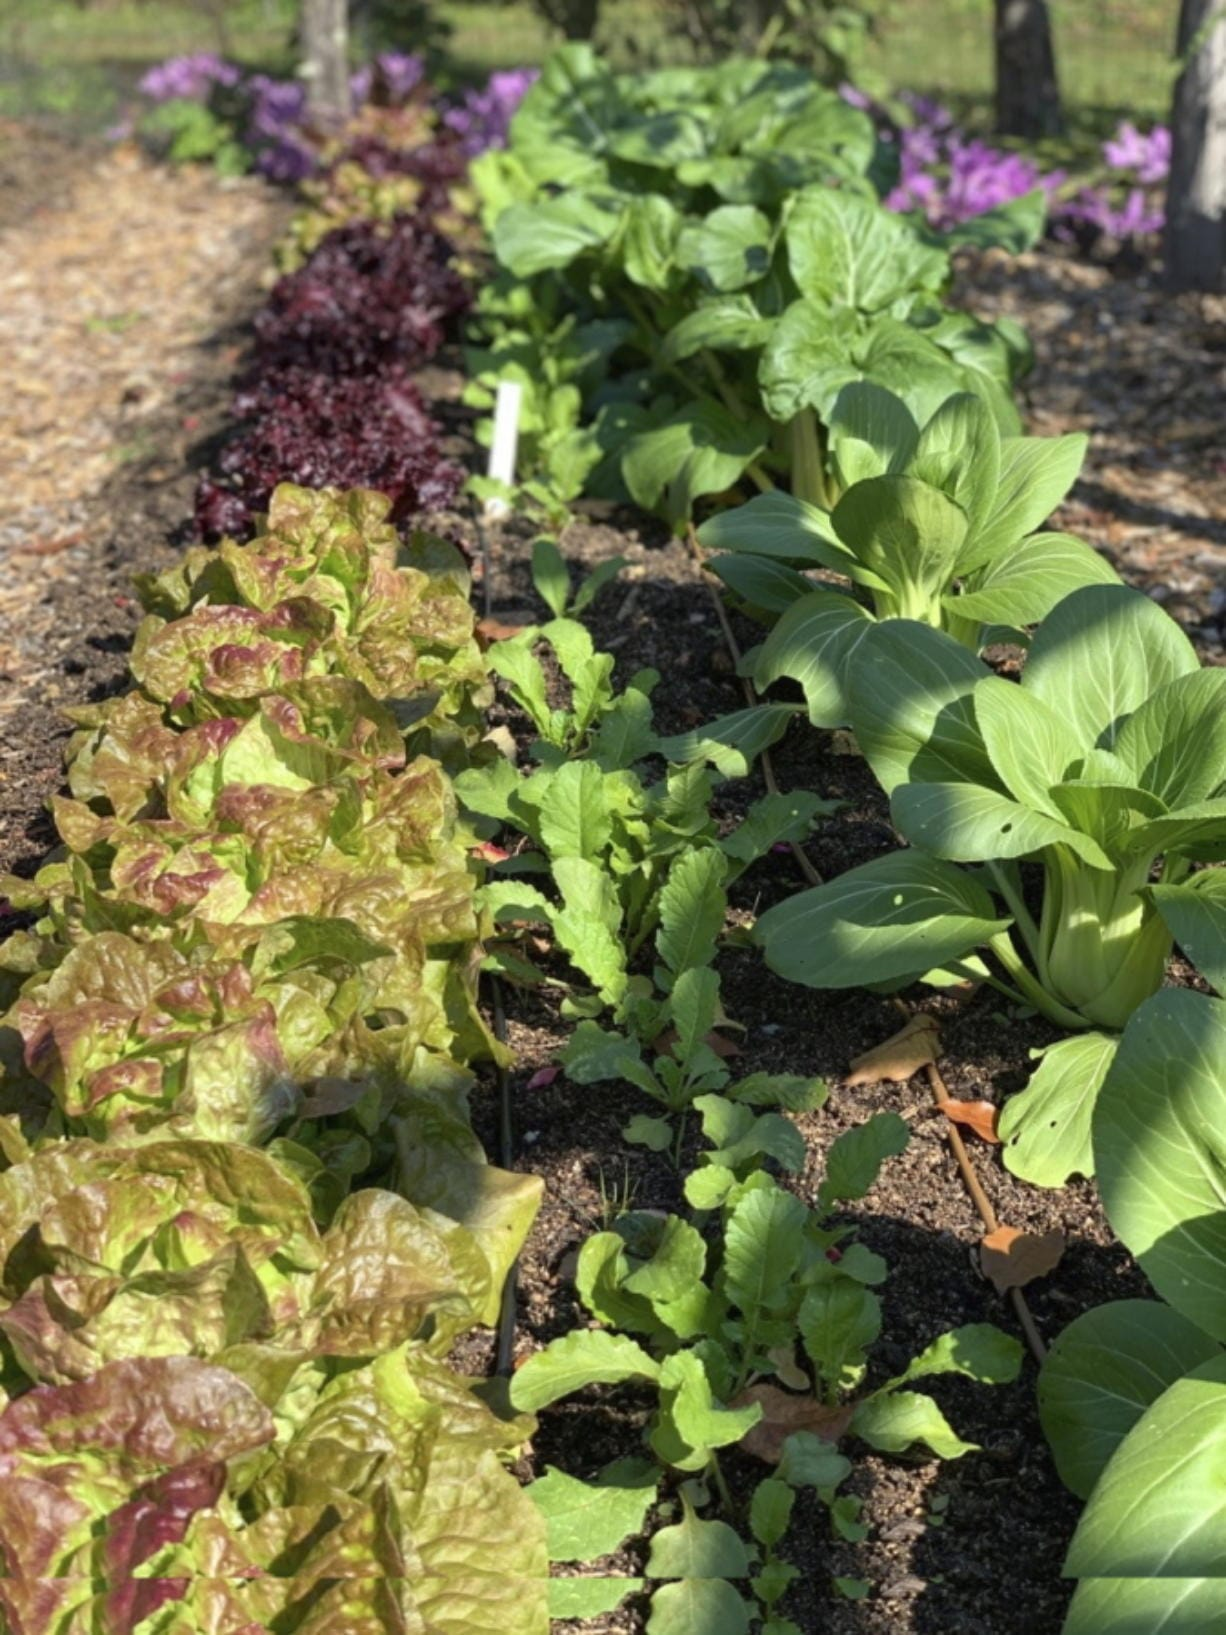 Frost is no problem for cold-hardy vegetables such as lettuce and Chinese cabbage, which thrive in cold weather.